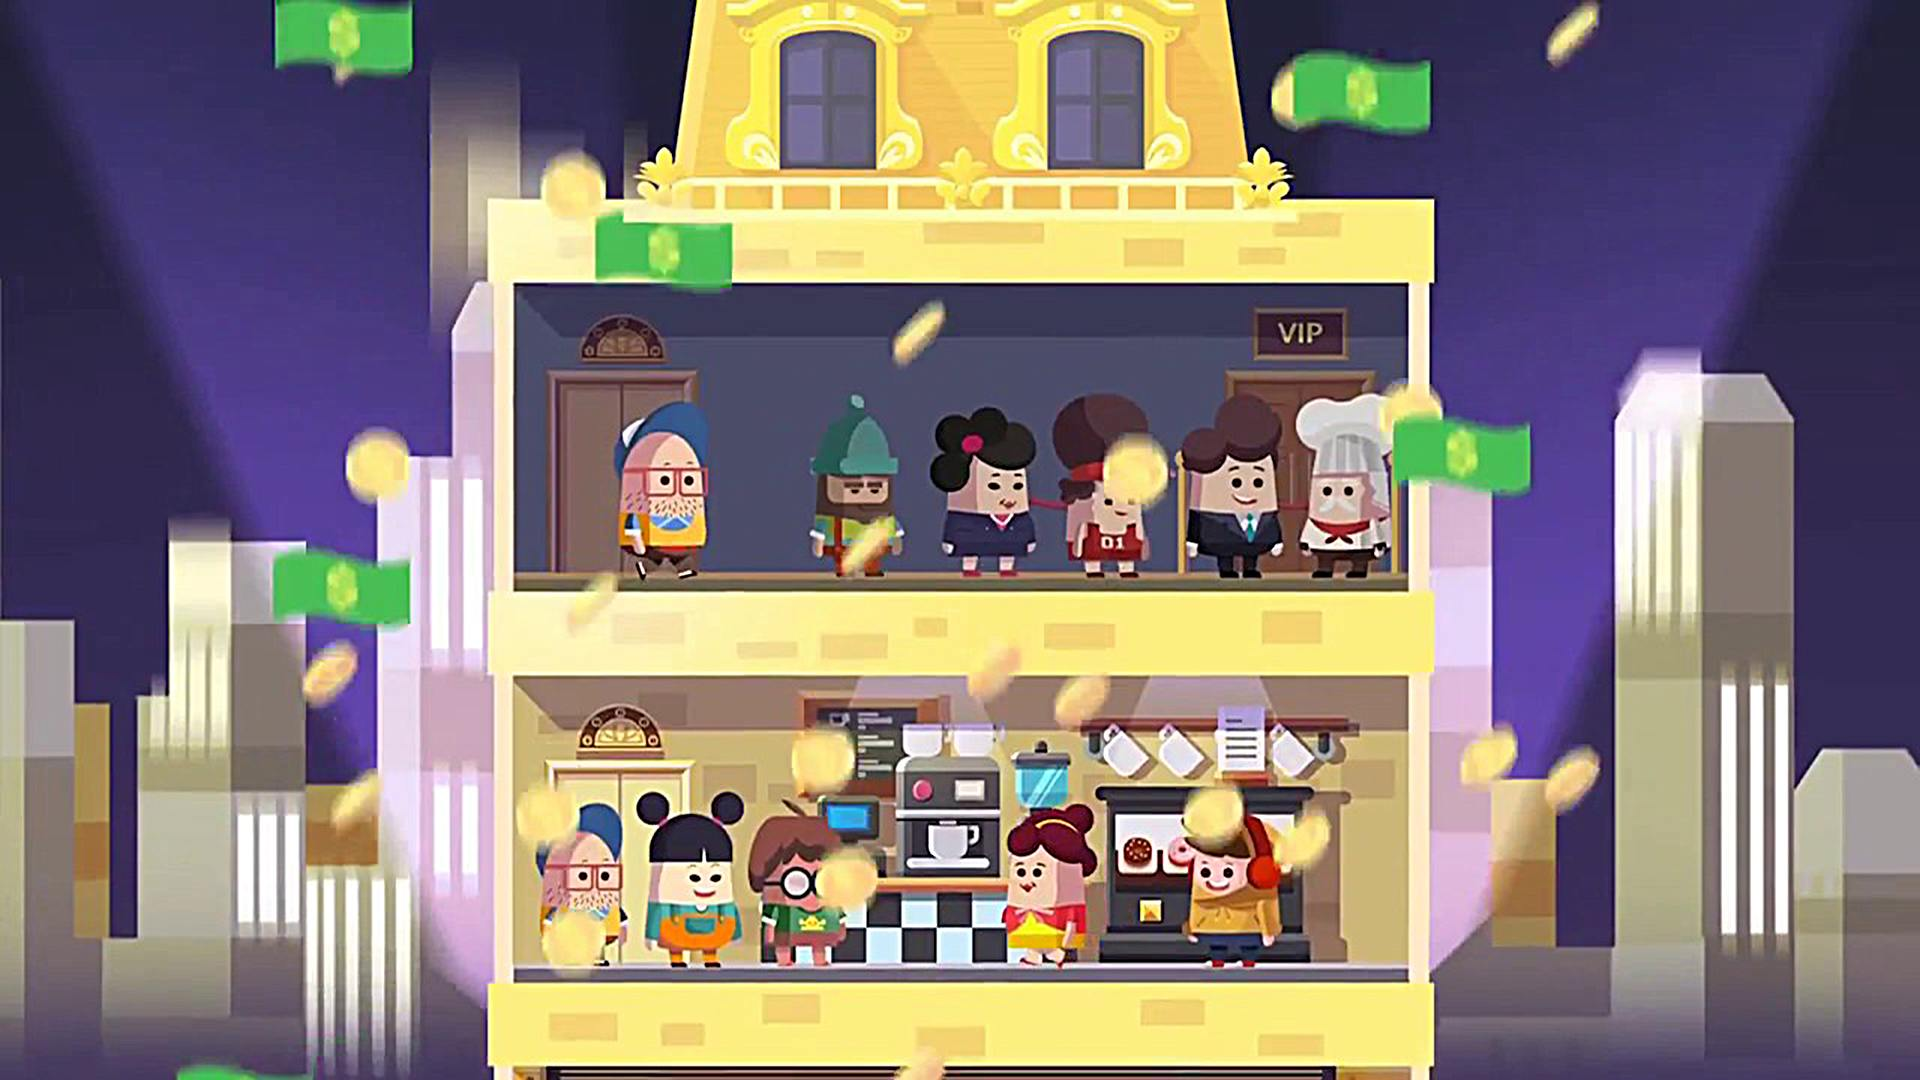 [INFO] CASHINC.G4MER.WIN CASH INC FAME AND FORTUNE GAME | UNLIMITED Crystals and Extra Crystals